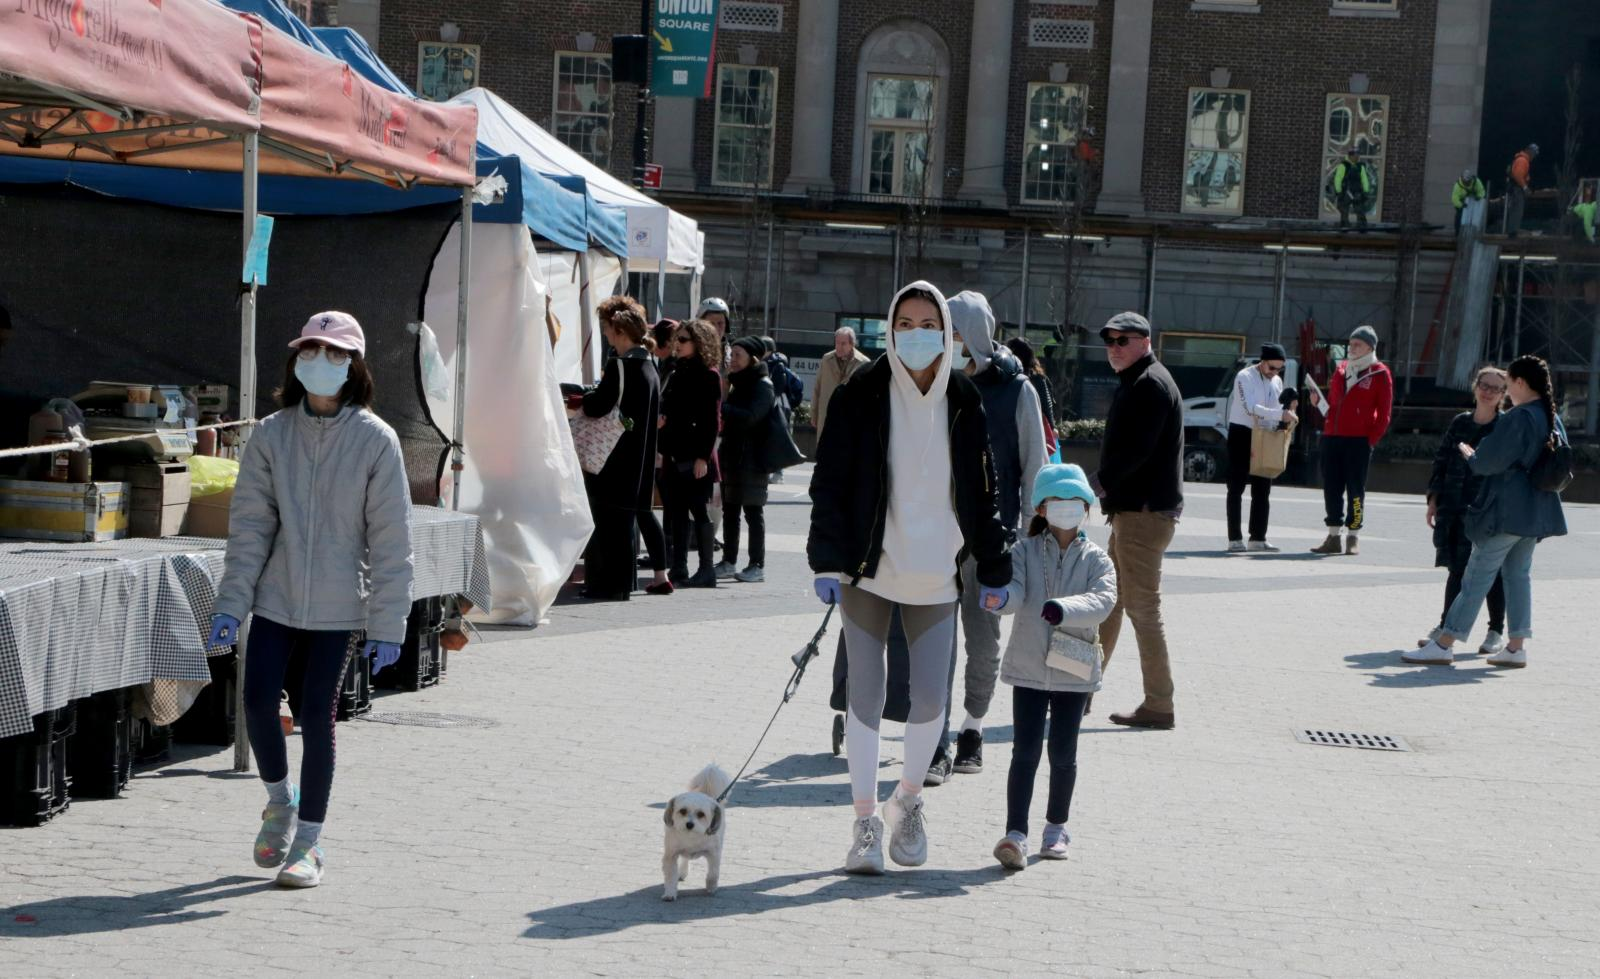 New York - MARCH 18, 2020 - A unidentified family wears facial masks Wednesday morning while strolling on the Union Square farmers. As coronavirus infections continue to surge, New York has ordered private business to cut on-site workforce by half. (Luiz C. Ribeiro for New York Daily News)